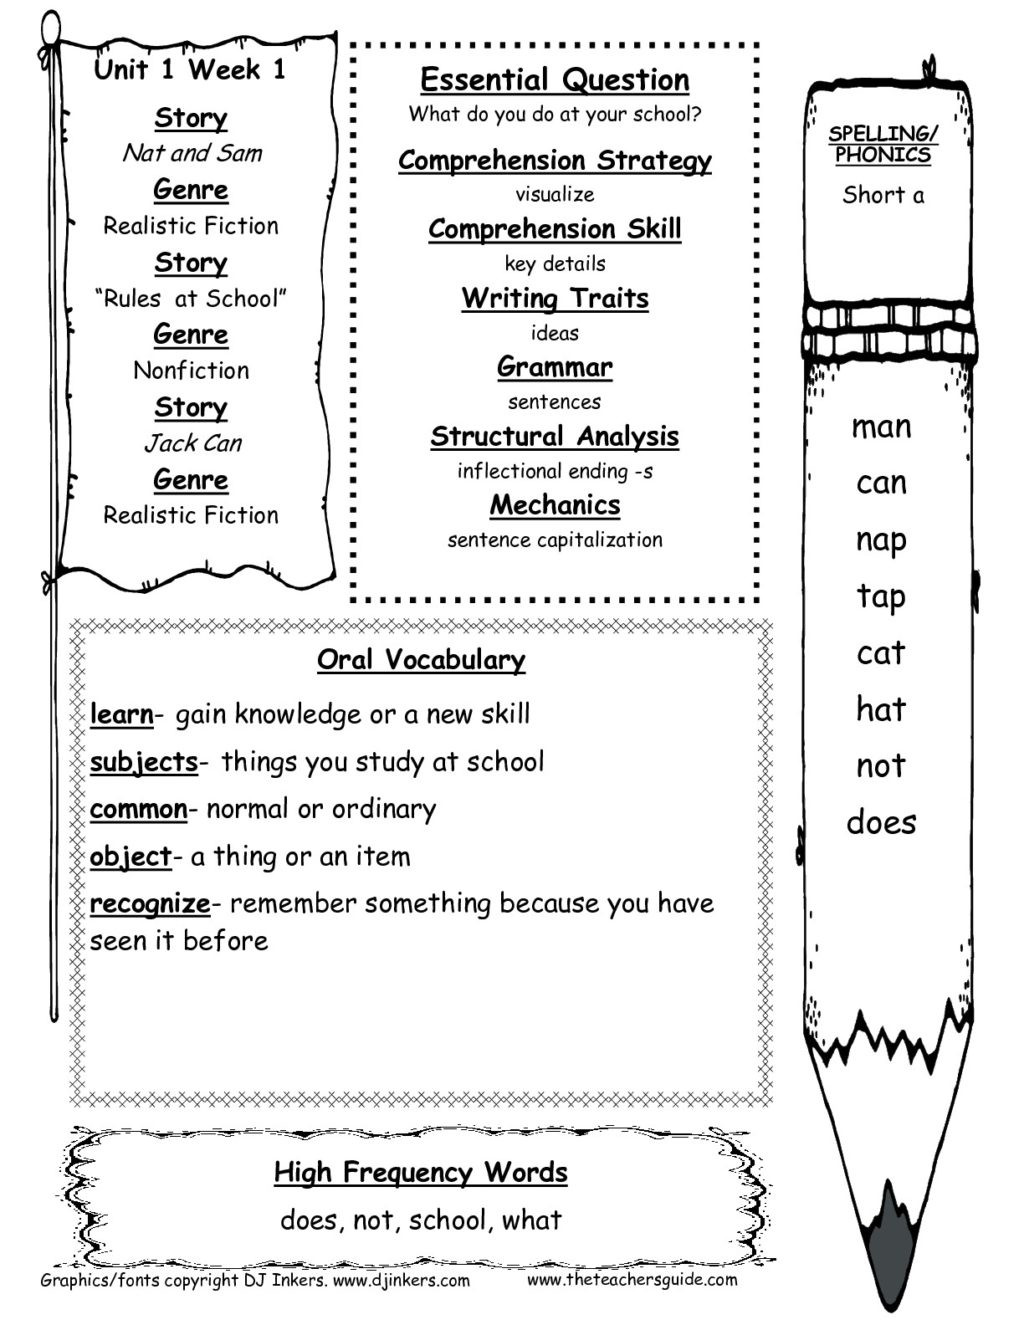 writing sentences worksheets for 1st grade unitoneweekonettg mcgraw hill wonders first resources and printouts worksheet 1024x1325